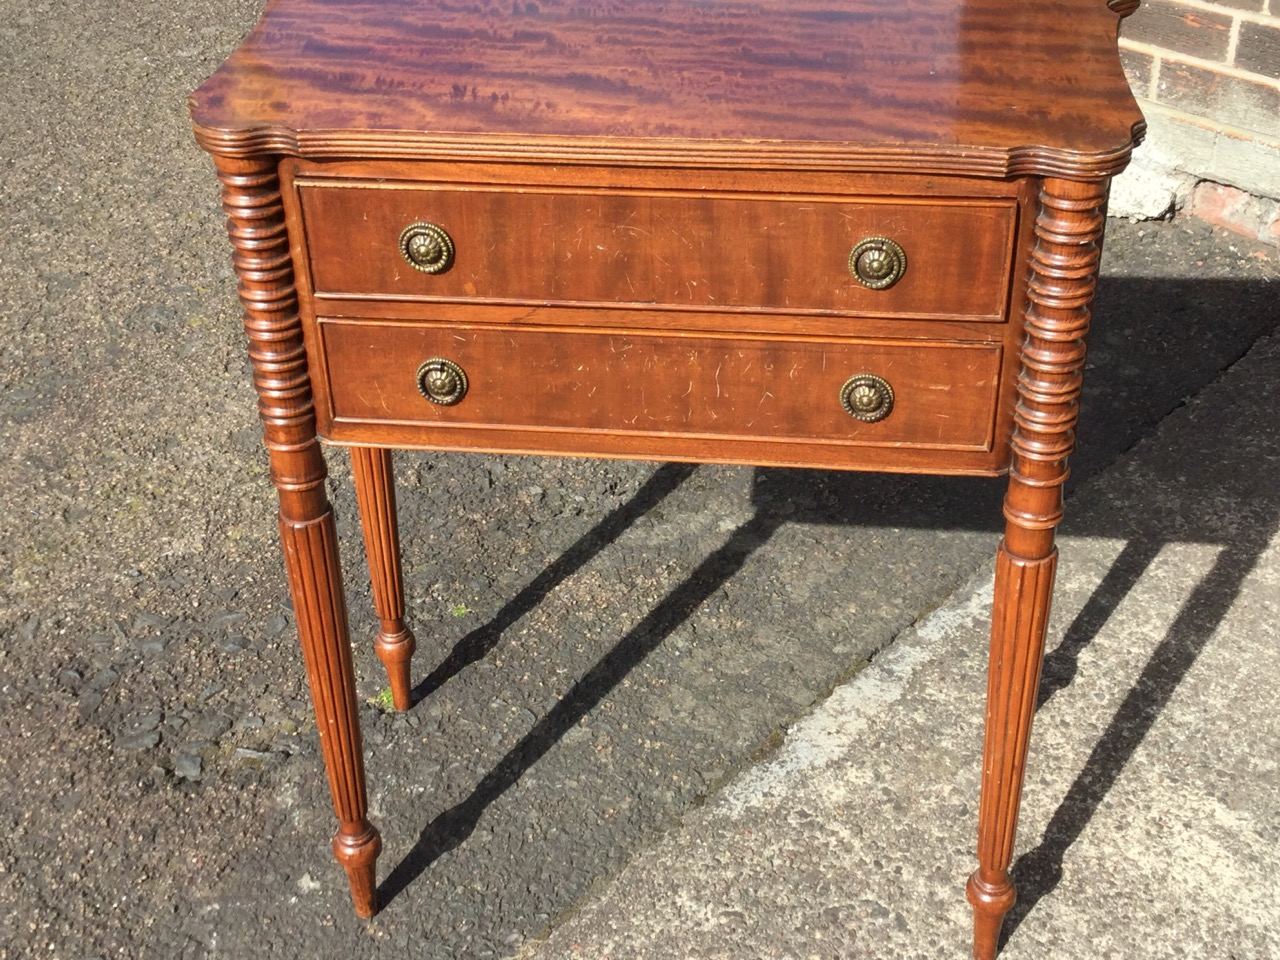 Lot 40 - A mahogany side cabinet, the shaped top with ribbed edge above two cockbeaded drawers framed by